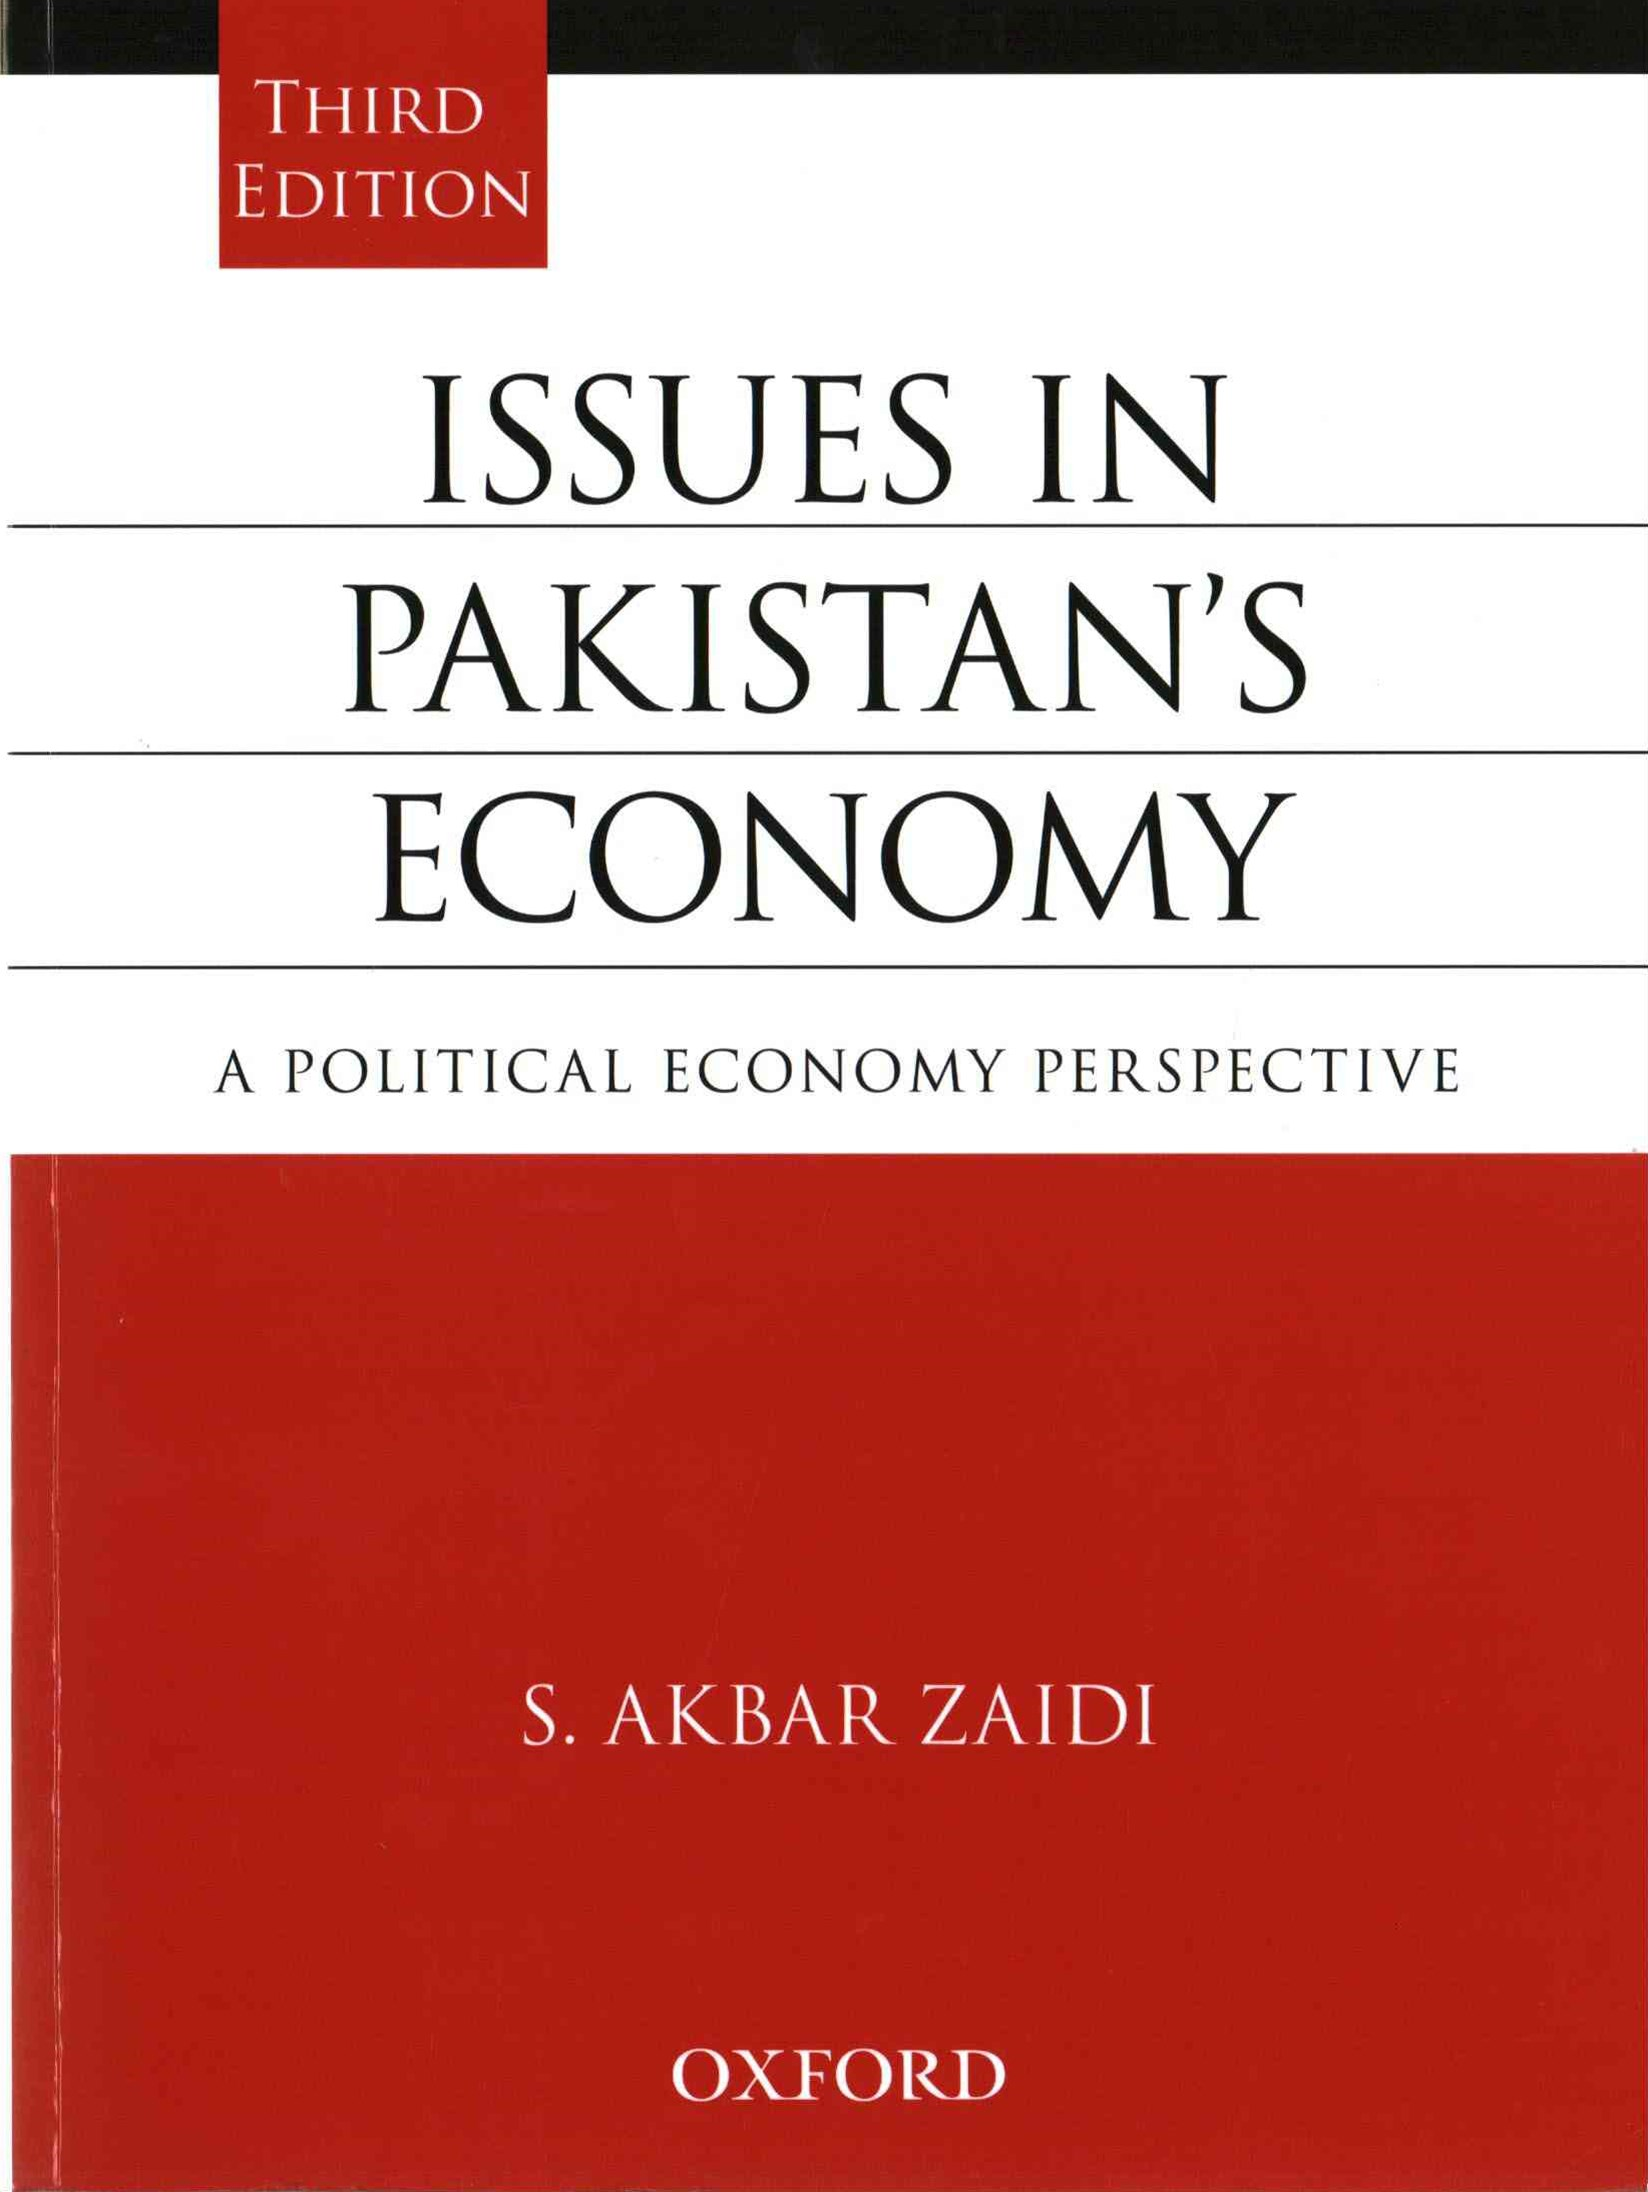 Issues in Pakistan's Economy